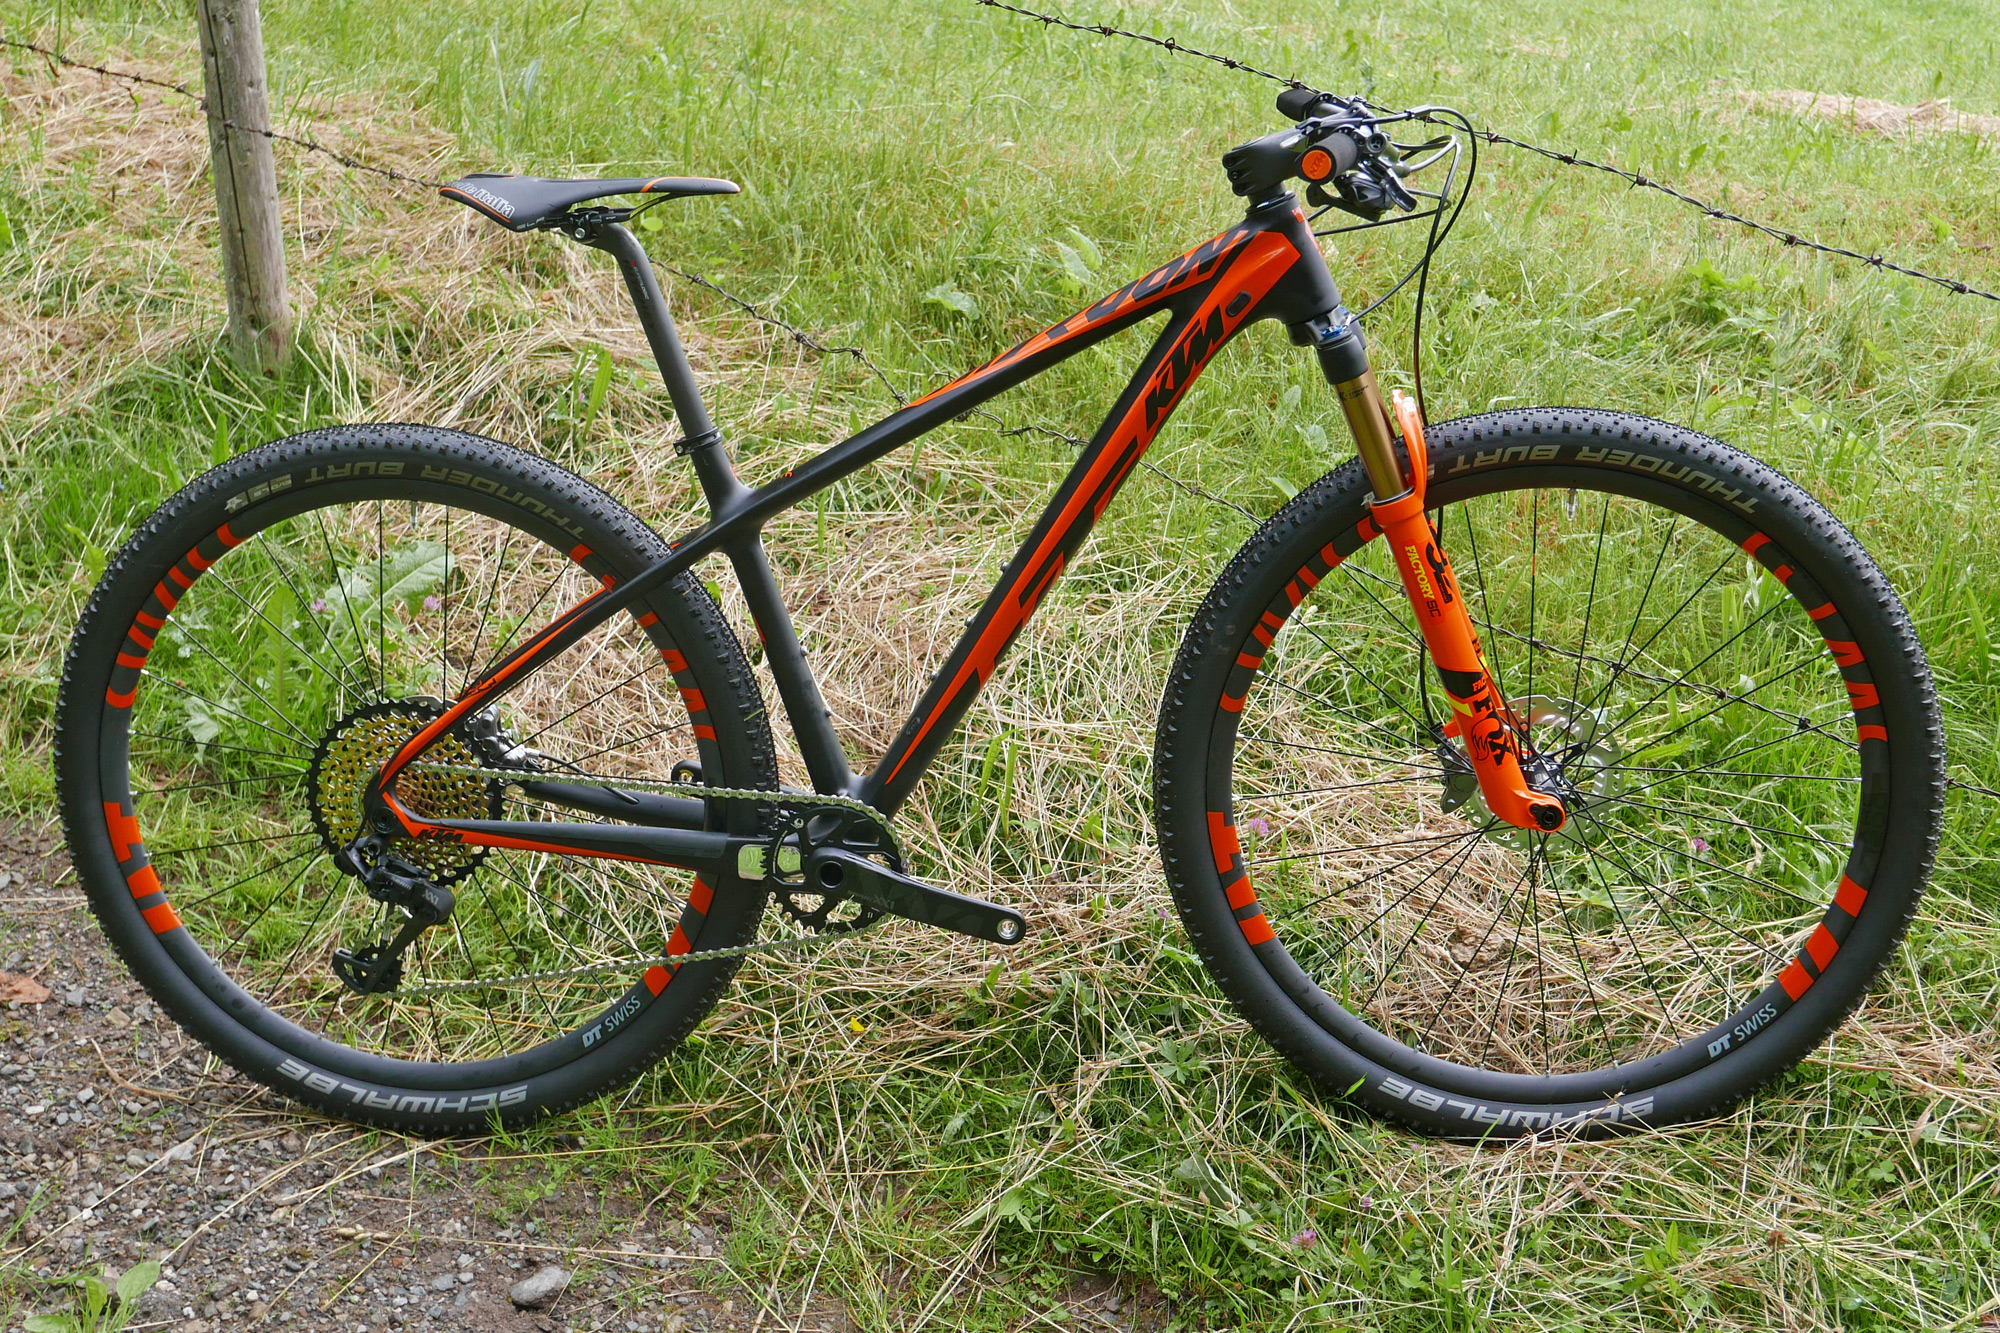 Ktm Lays Up Race Ready Xc Full Suspension Scarp Hardtail Myroon